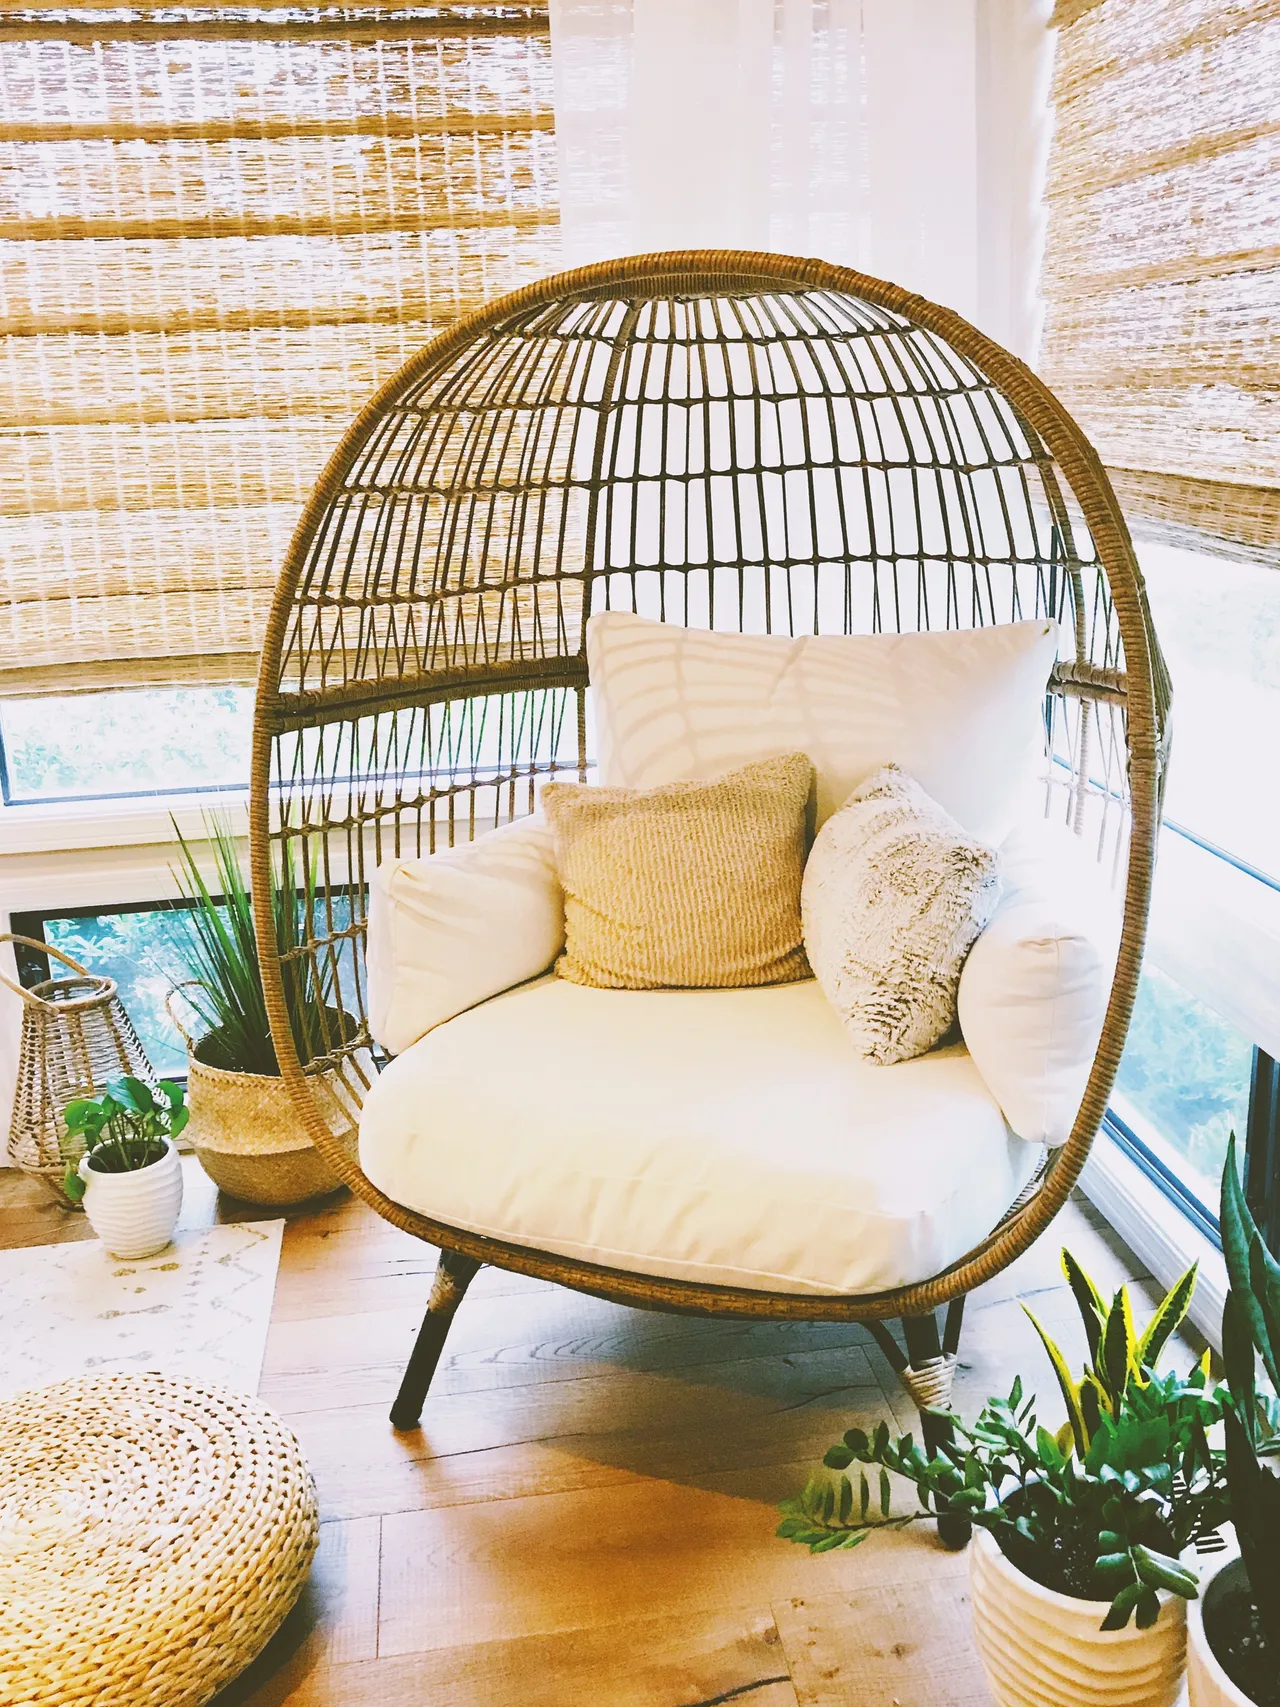 This Boho Chic Rattan Egg Chair Is The Perfect Indoor Nest For Now But Will Be Moving Out Outdoor Furniture Decor Rattan Egg Chair First Apartment Decorating